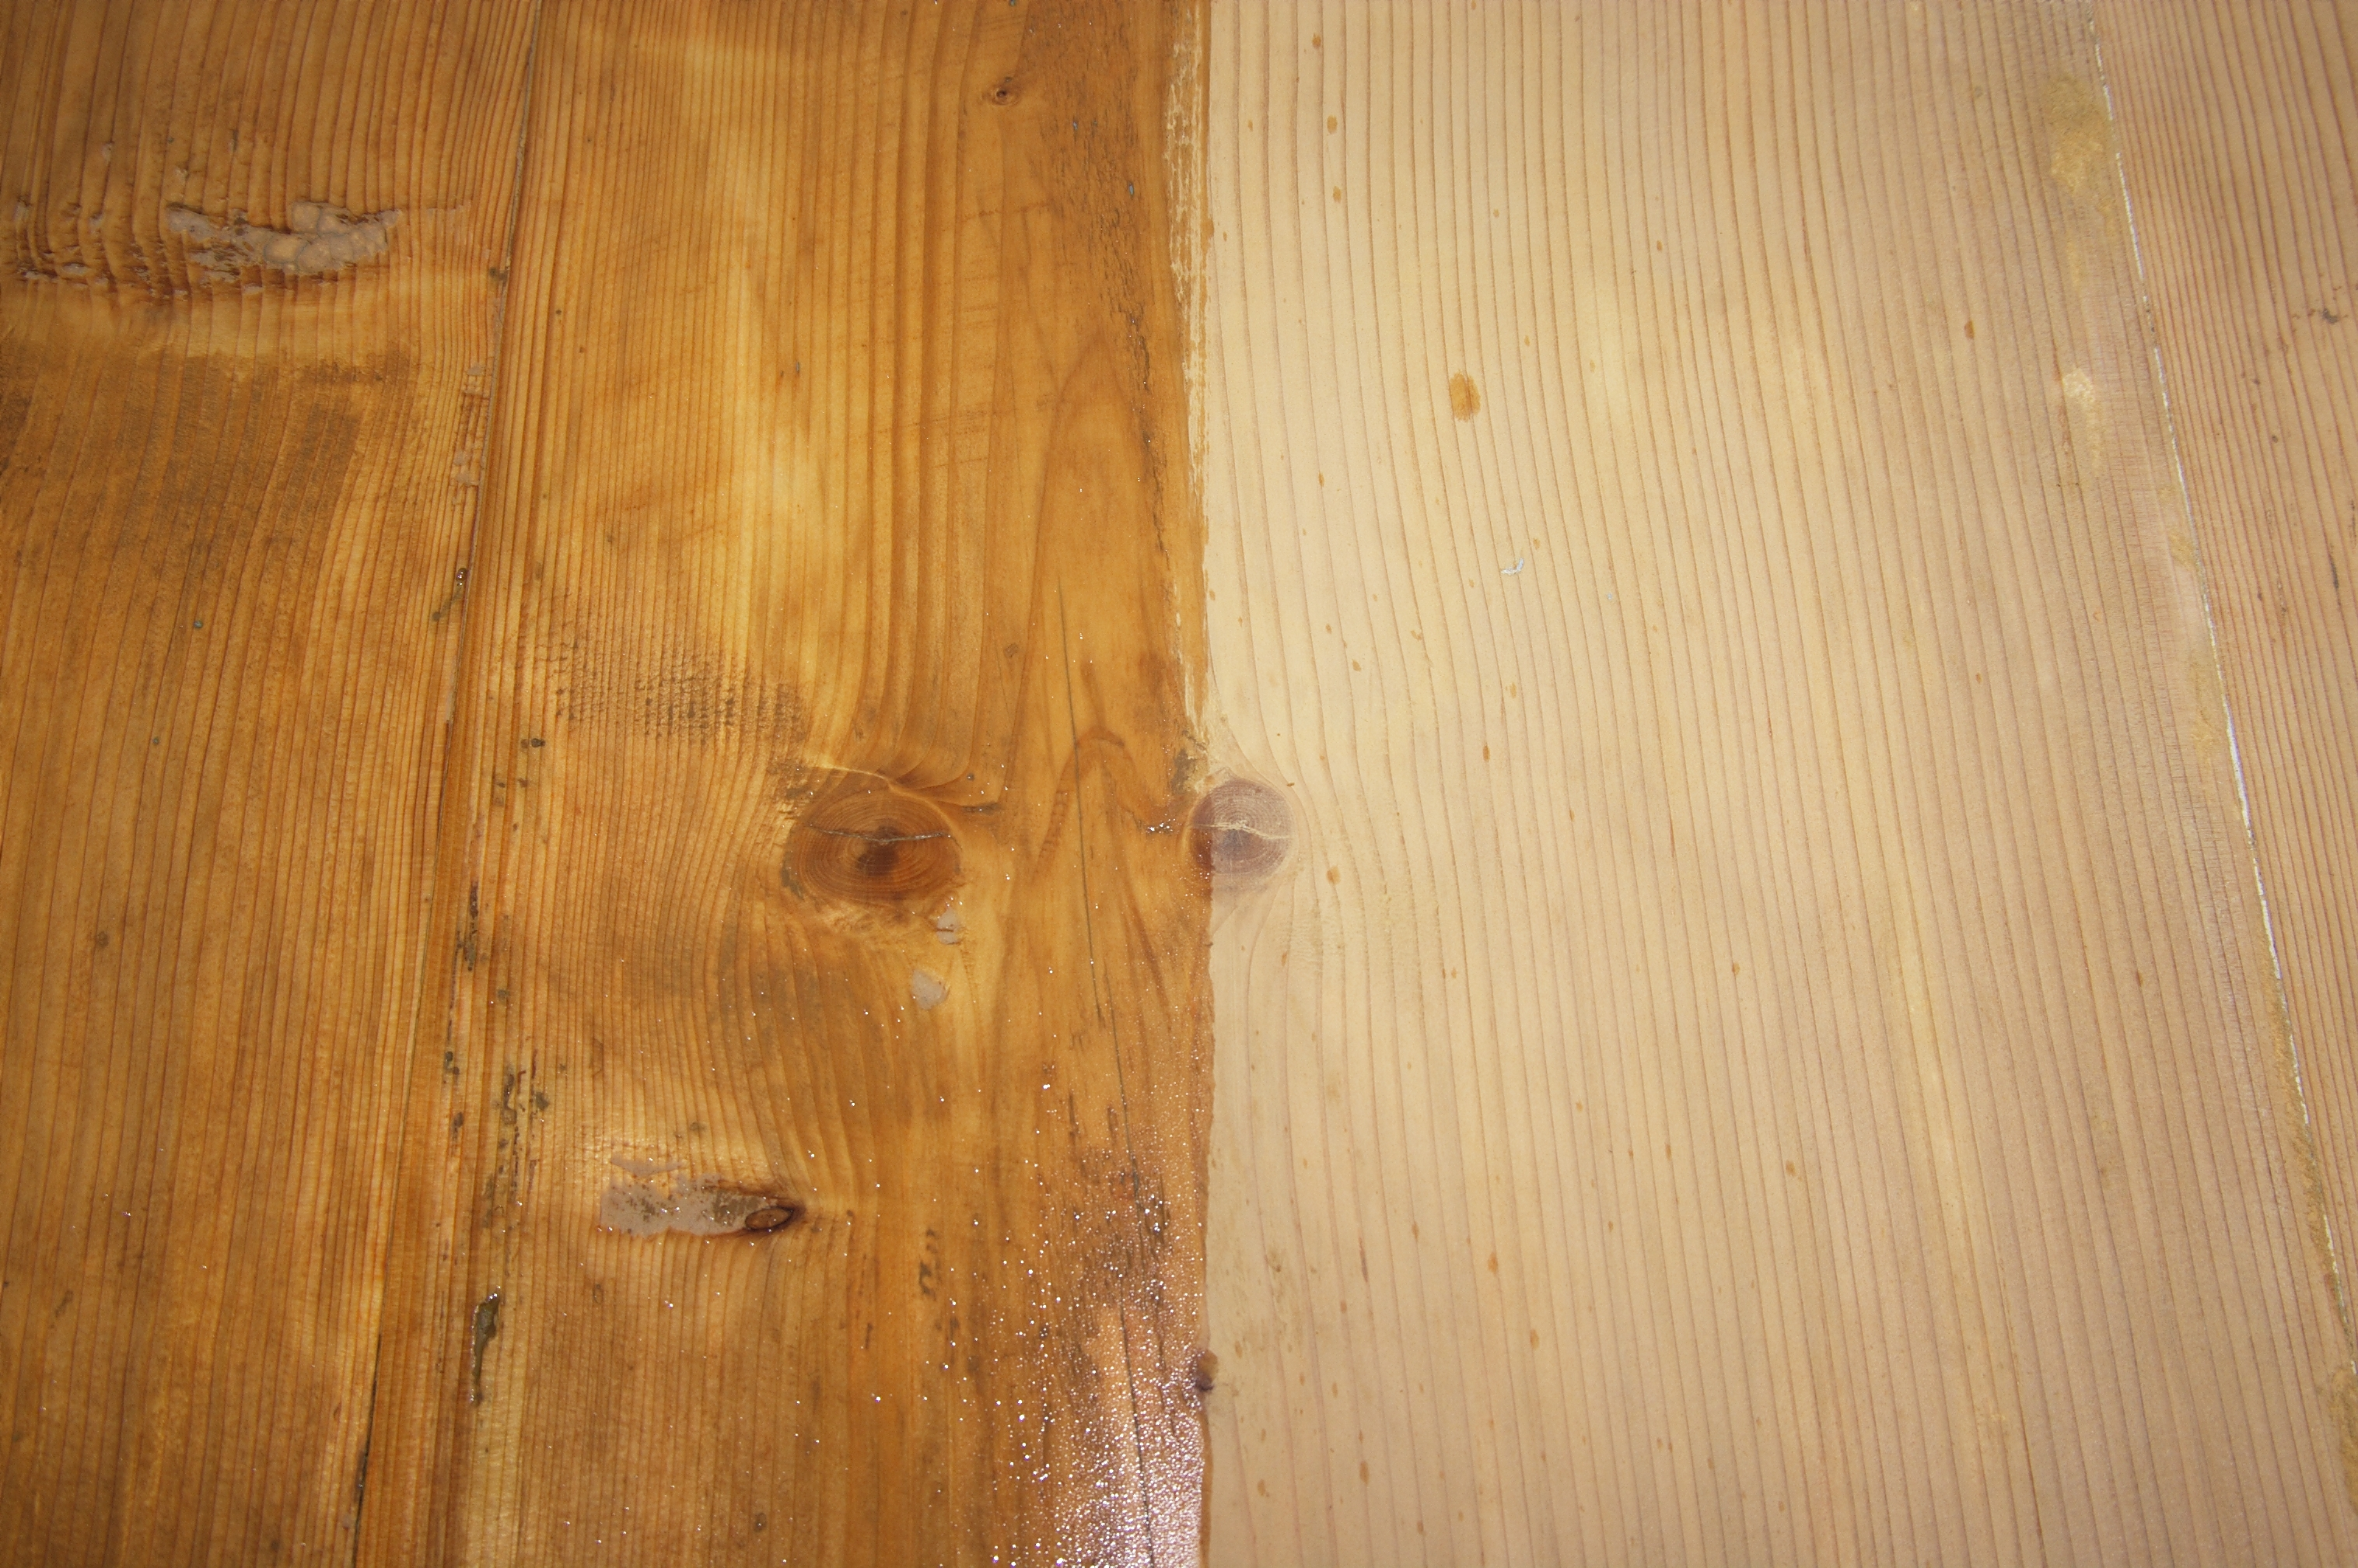 Linseed oil, a natural solution for Wood Finishing